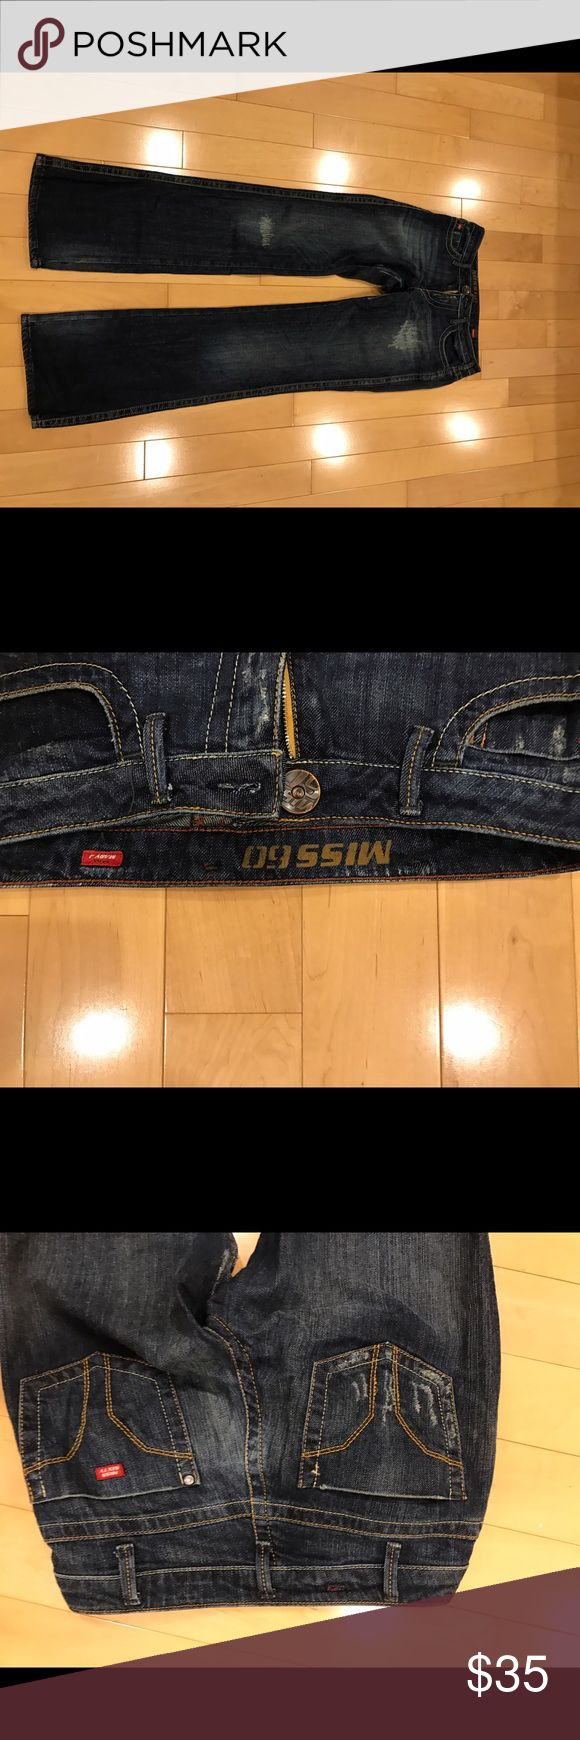 Women's Miss Sixty Jeans These are a gently used pair of women's jeans. They are stainless and in excellent condition. The fabric is very soft and flexible. They are perfect for all occasions. Miss Sixty Jeans Boot Cut